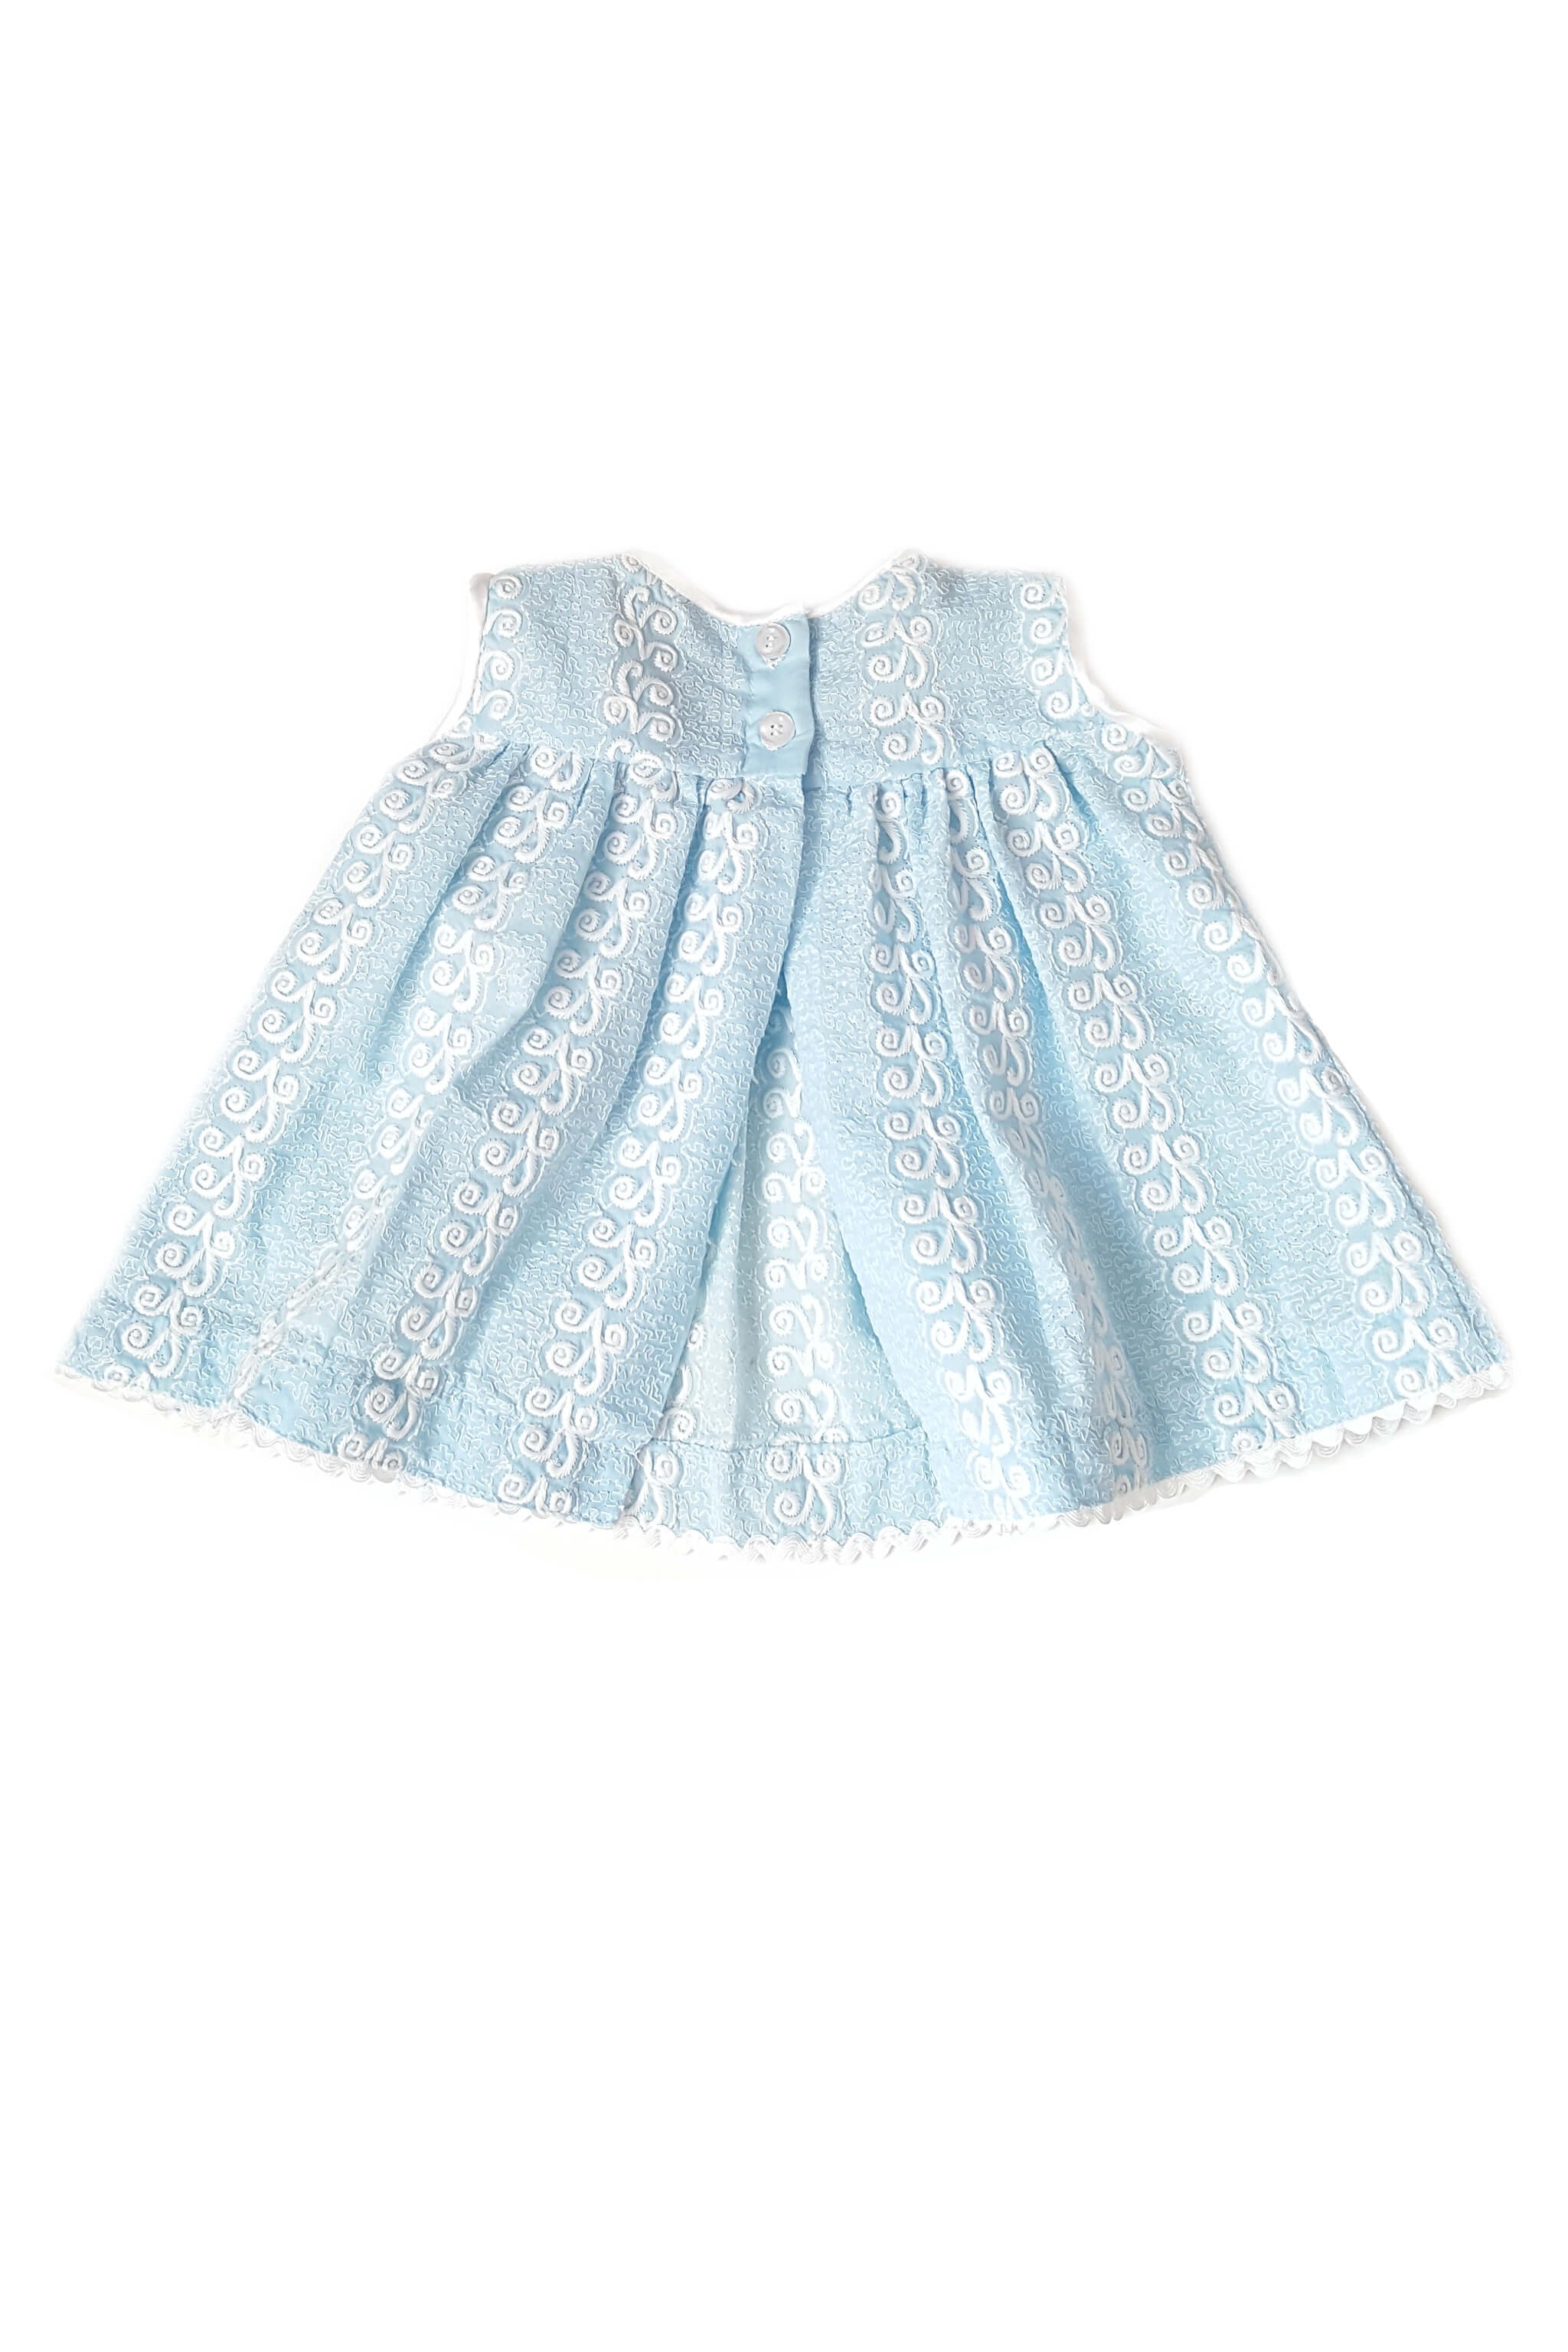 Back of dainty baby blue frock with delicate white embroidery, blush pink hand-embroidered flowers and eyelet trim with back opening for baby girls